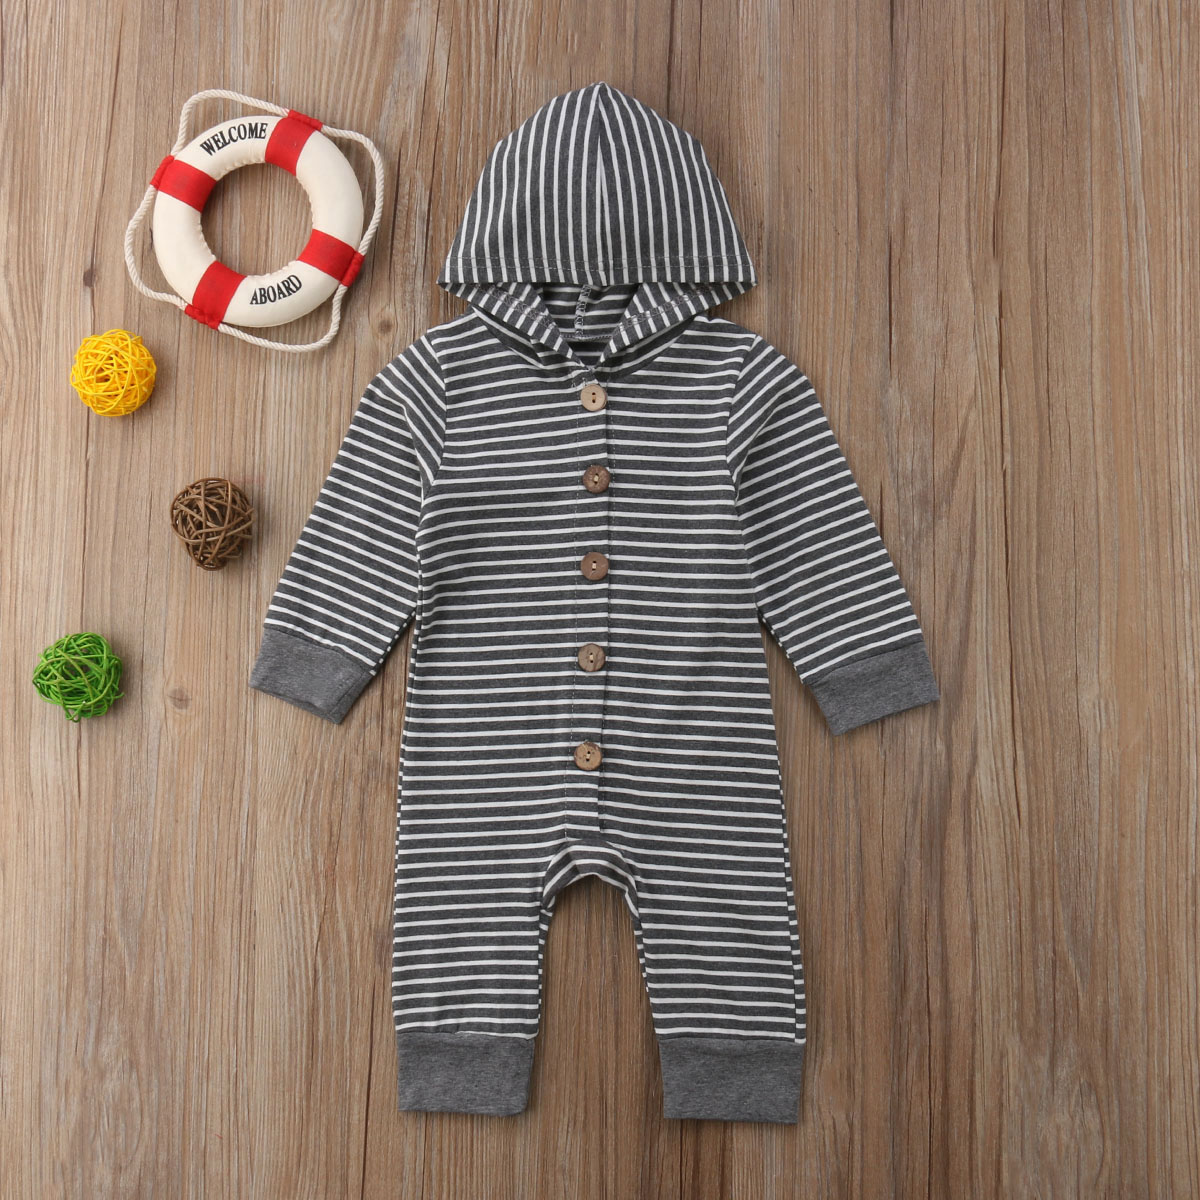 HTB1rw46BOCYBuNkHFCcq6AHtVXaq 2019 Children Spring Autumn Clothing Baby Kids Boys Girls Infant Hooded Solid Romper Jumpsuit Long Sleeve Clothes Outfits 0-24M